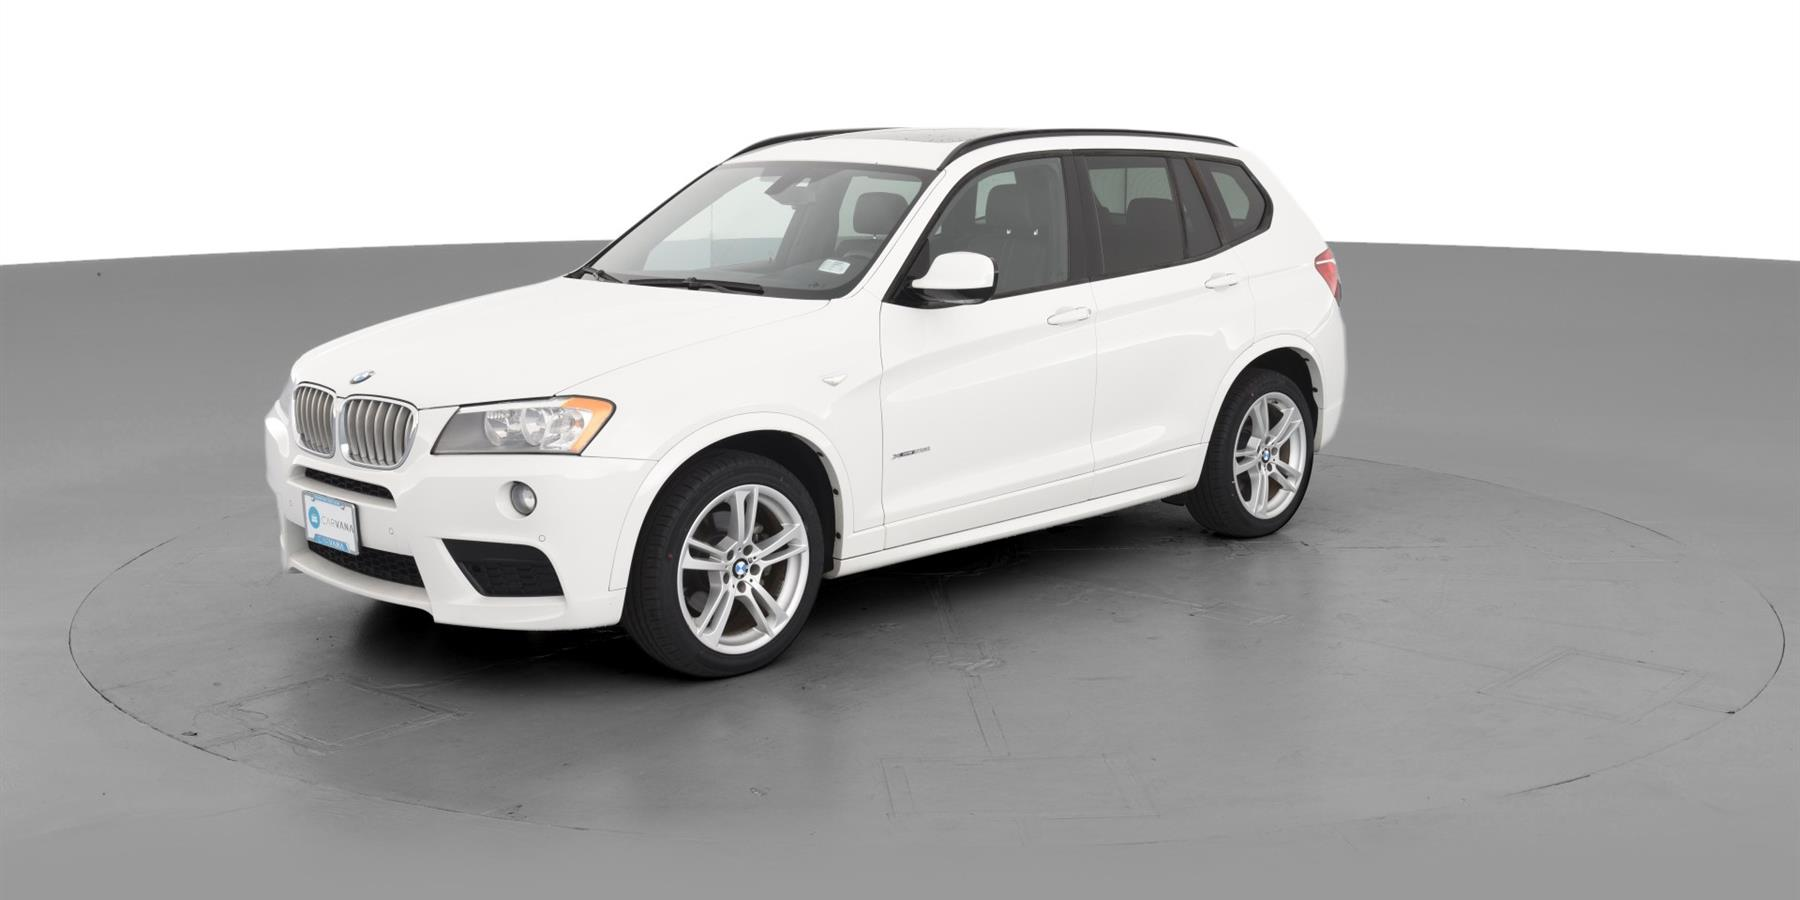 2014 Bmw X3 Xdrive28i Sport Utility 4d For Sale Carvana